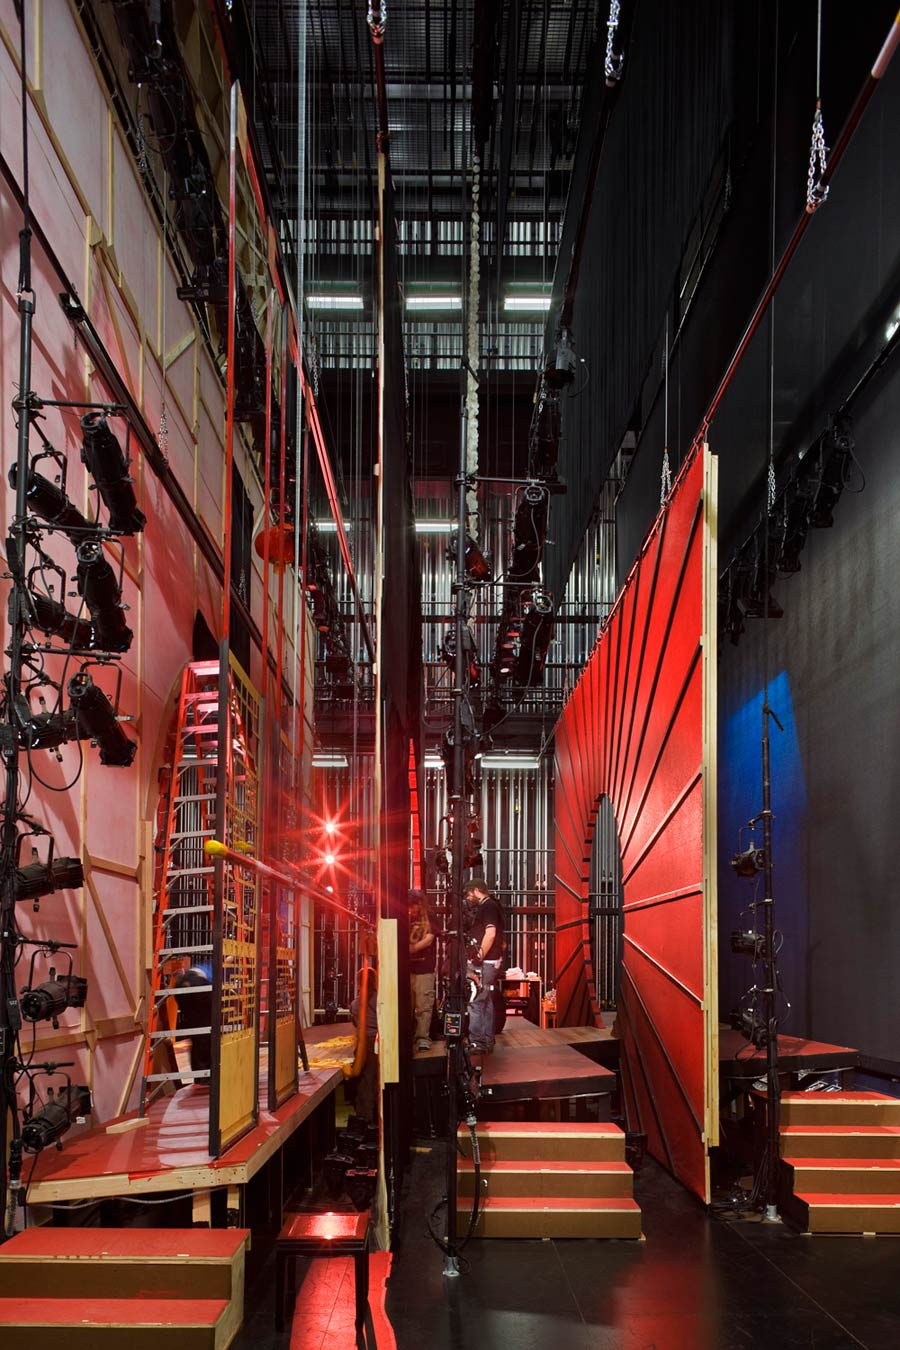 <p>Backstage, the fly gallery rises two and a half times the height of the proscenium for rigging scenery, lighting, and props. Ample wing space and a trap room allow actors to move beyond the possibilities of the former theater. Control rooms for lighting, sound, and stage direction are on the third floor, with uninterrupted sight lines to the stage and access to the lighting galleries. <br><small>© Peter Aaron/OTTO</small></p>